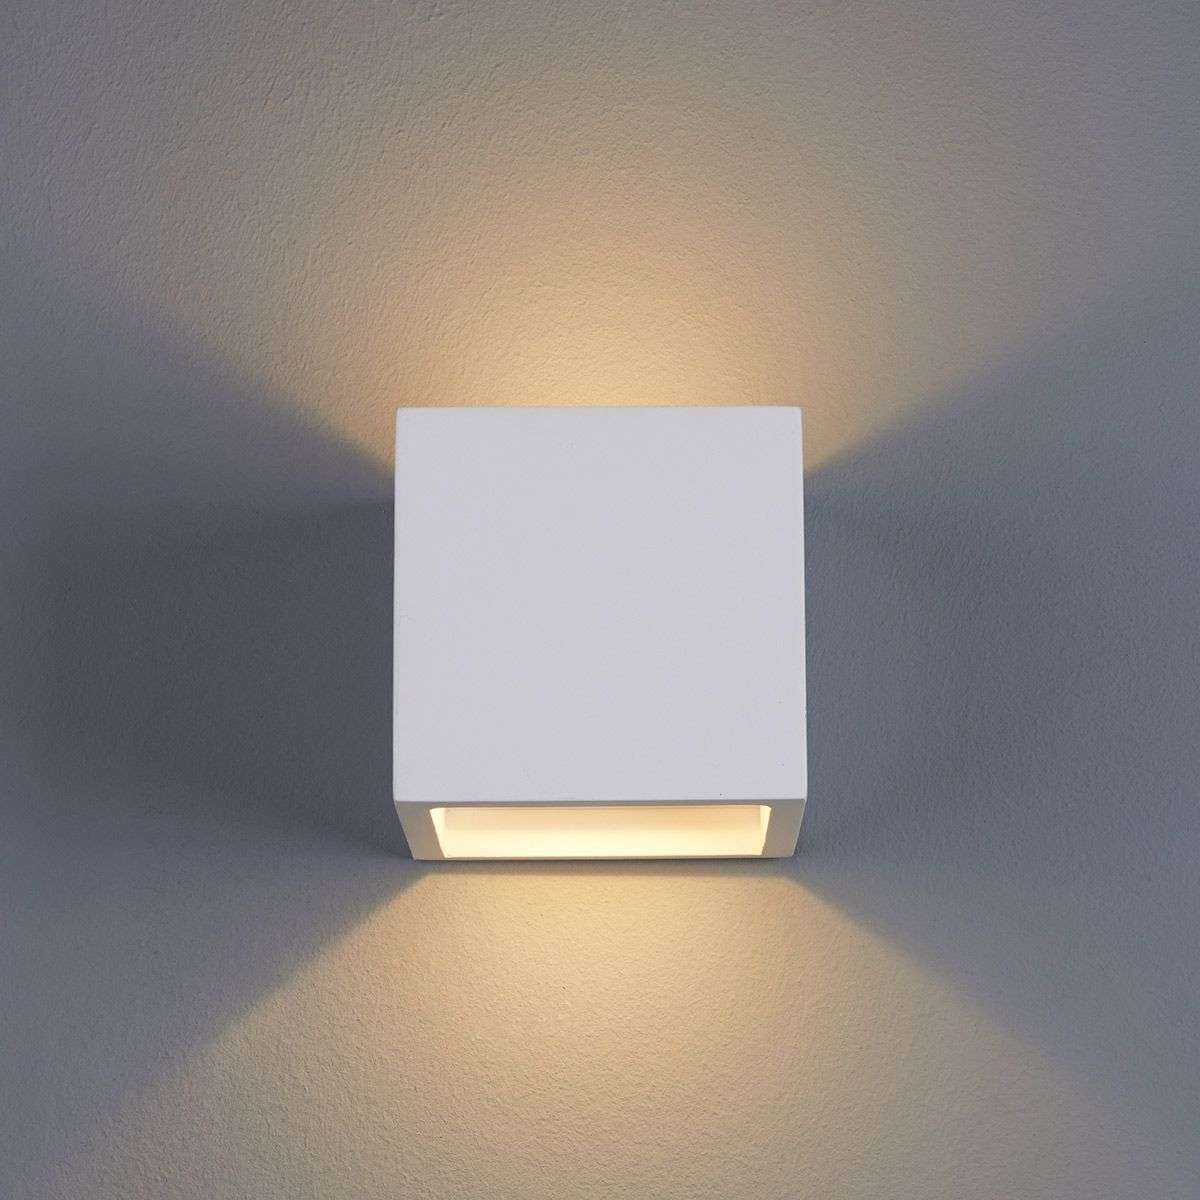 Marita led wall light cube shaped plaster lights marita led wall light cube shaped plaster aloadofball Image collections